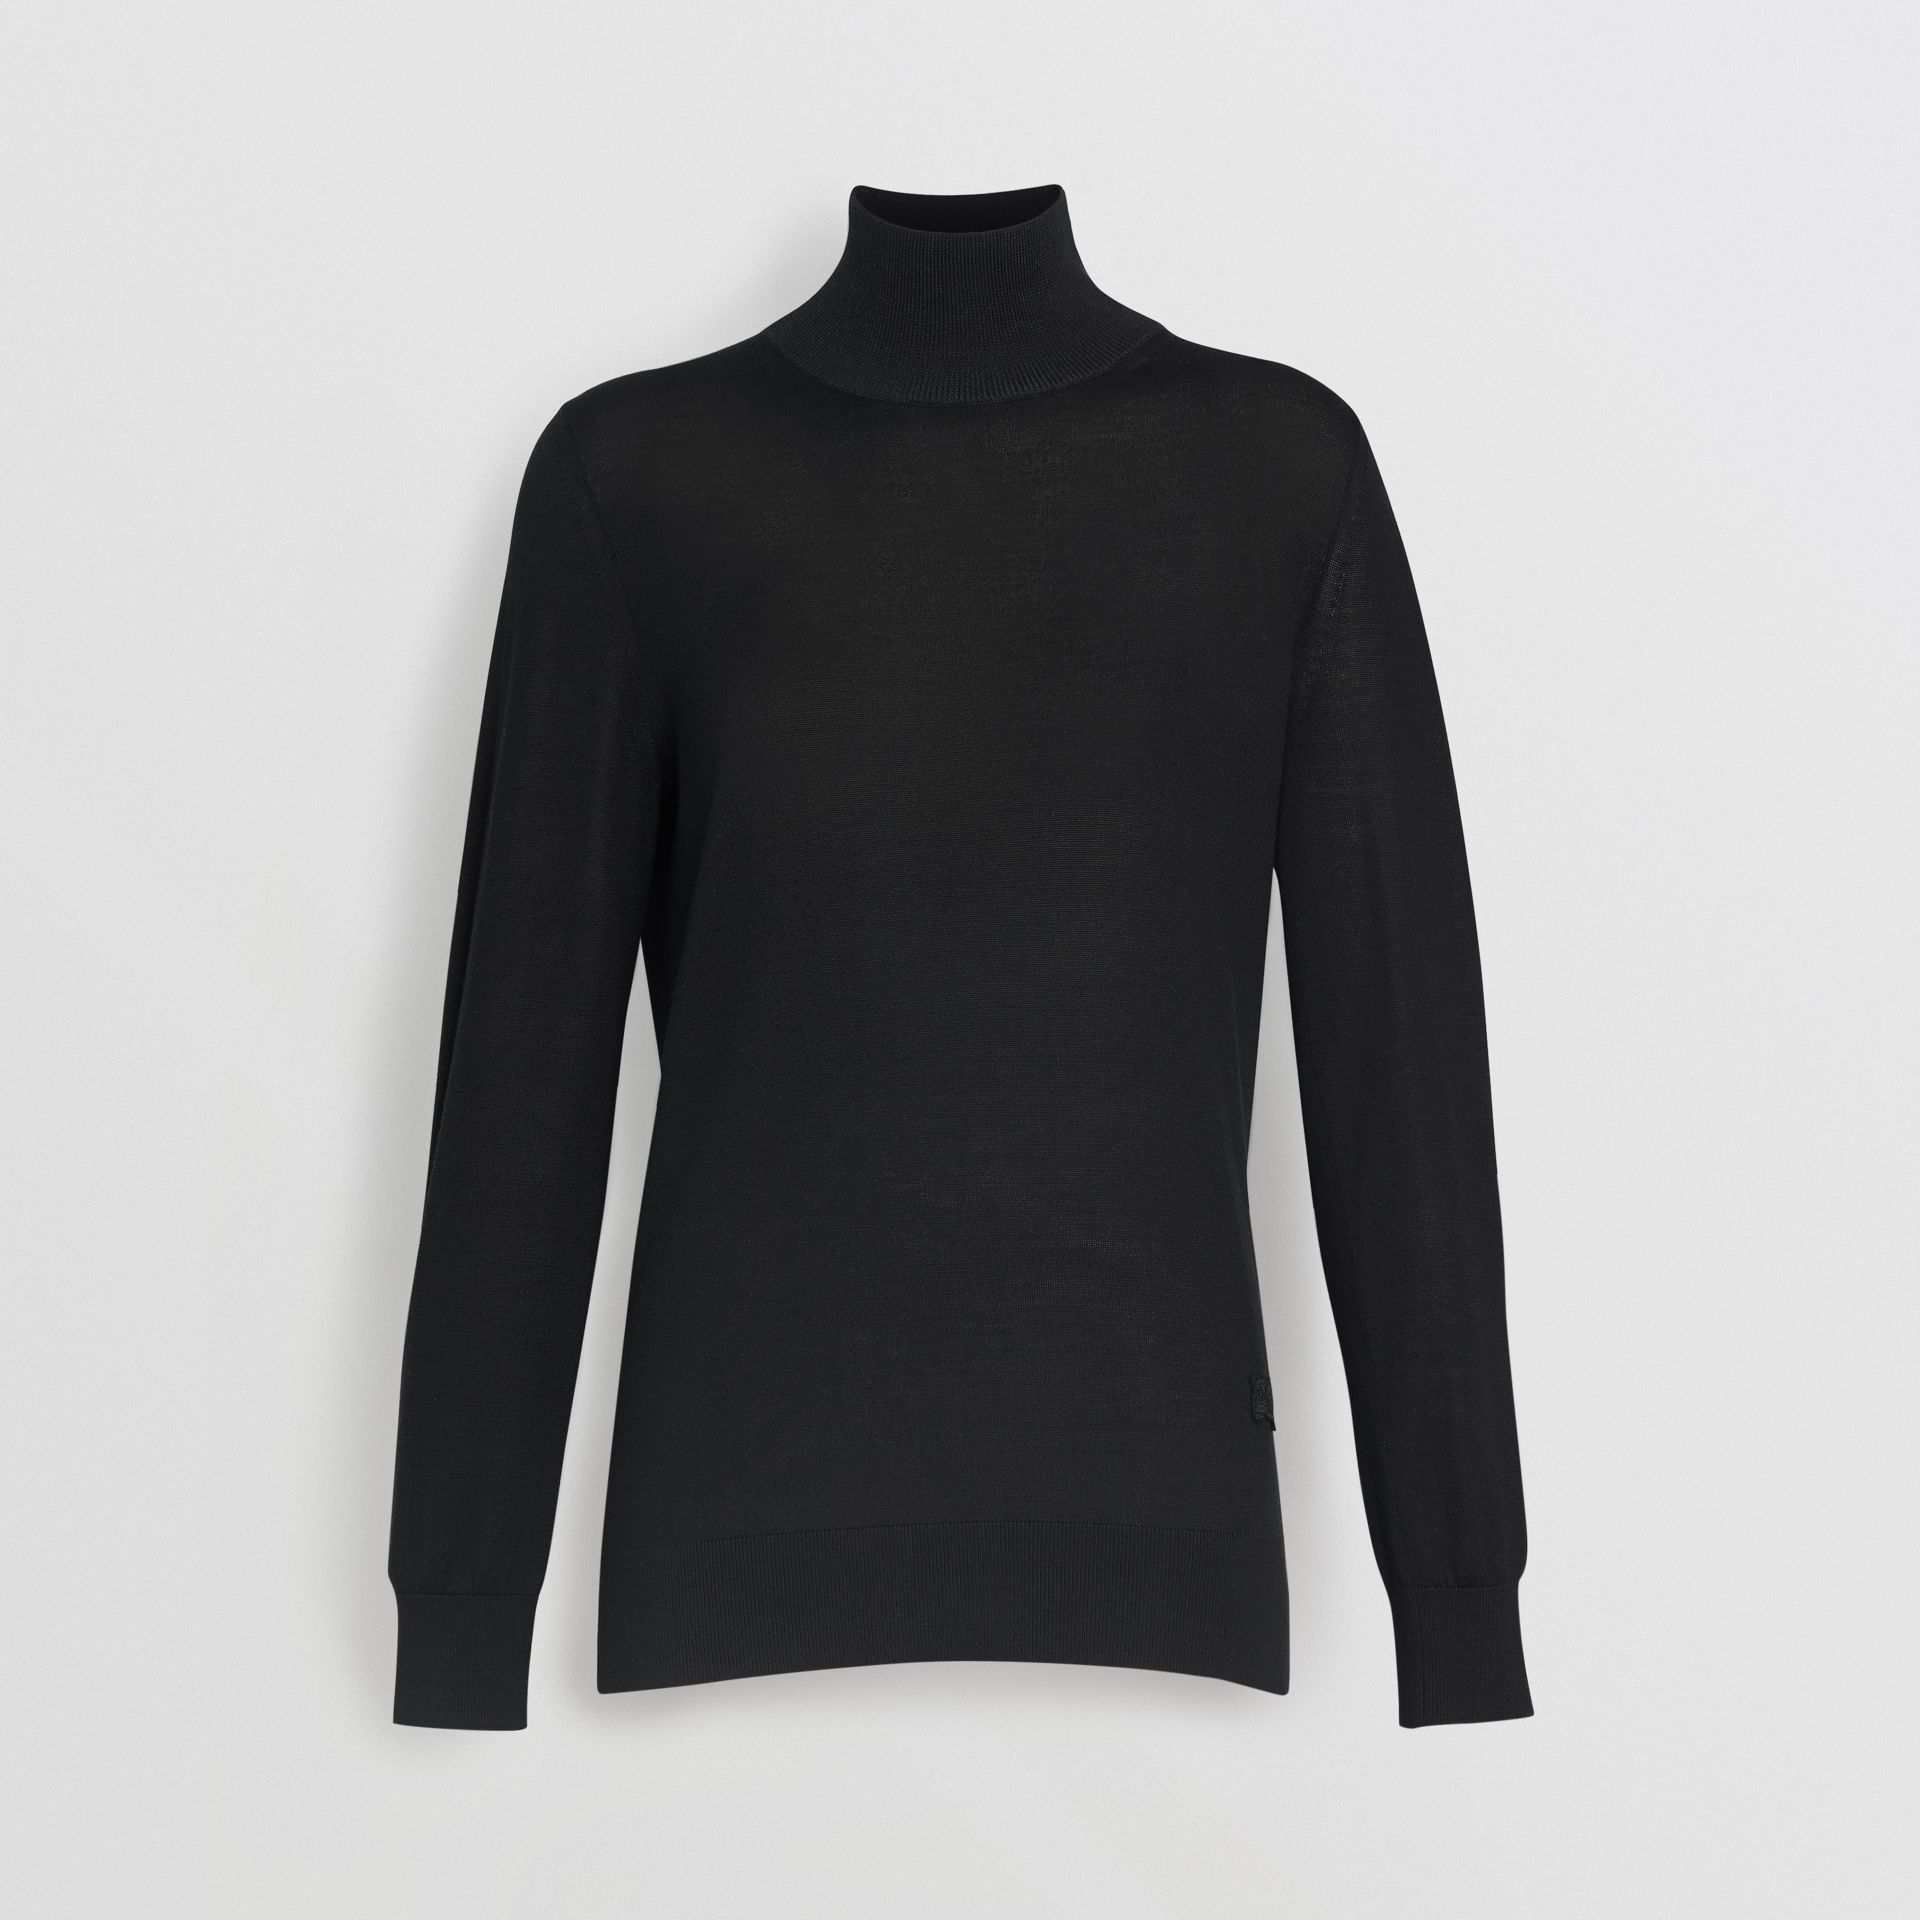 Silk Cashmere Roll-neck Sweater in Black - Women | Burberry - gallery image 3